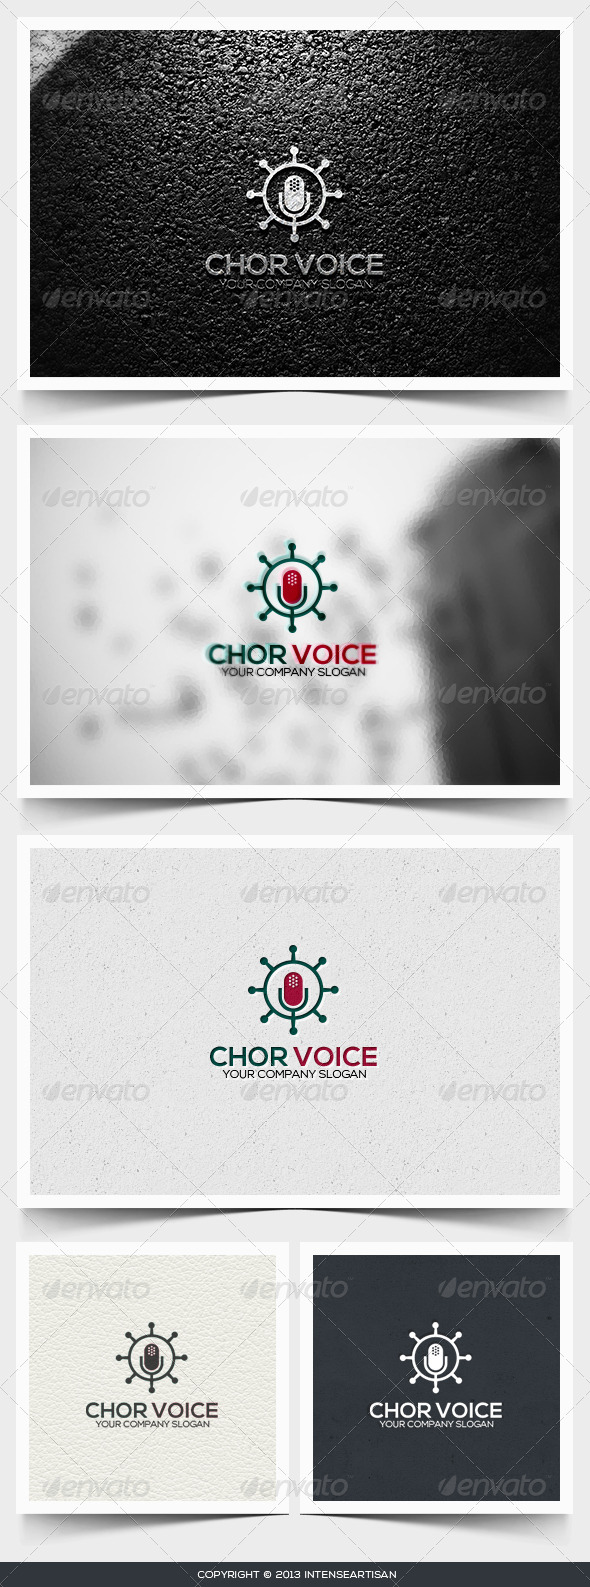 Chor Voice Logo Template - Objects Logo Templates